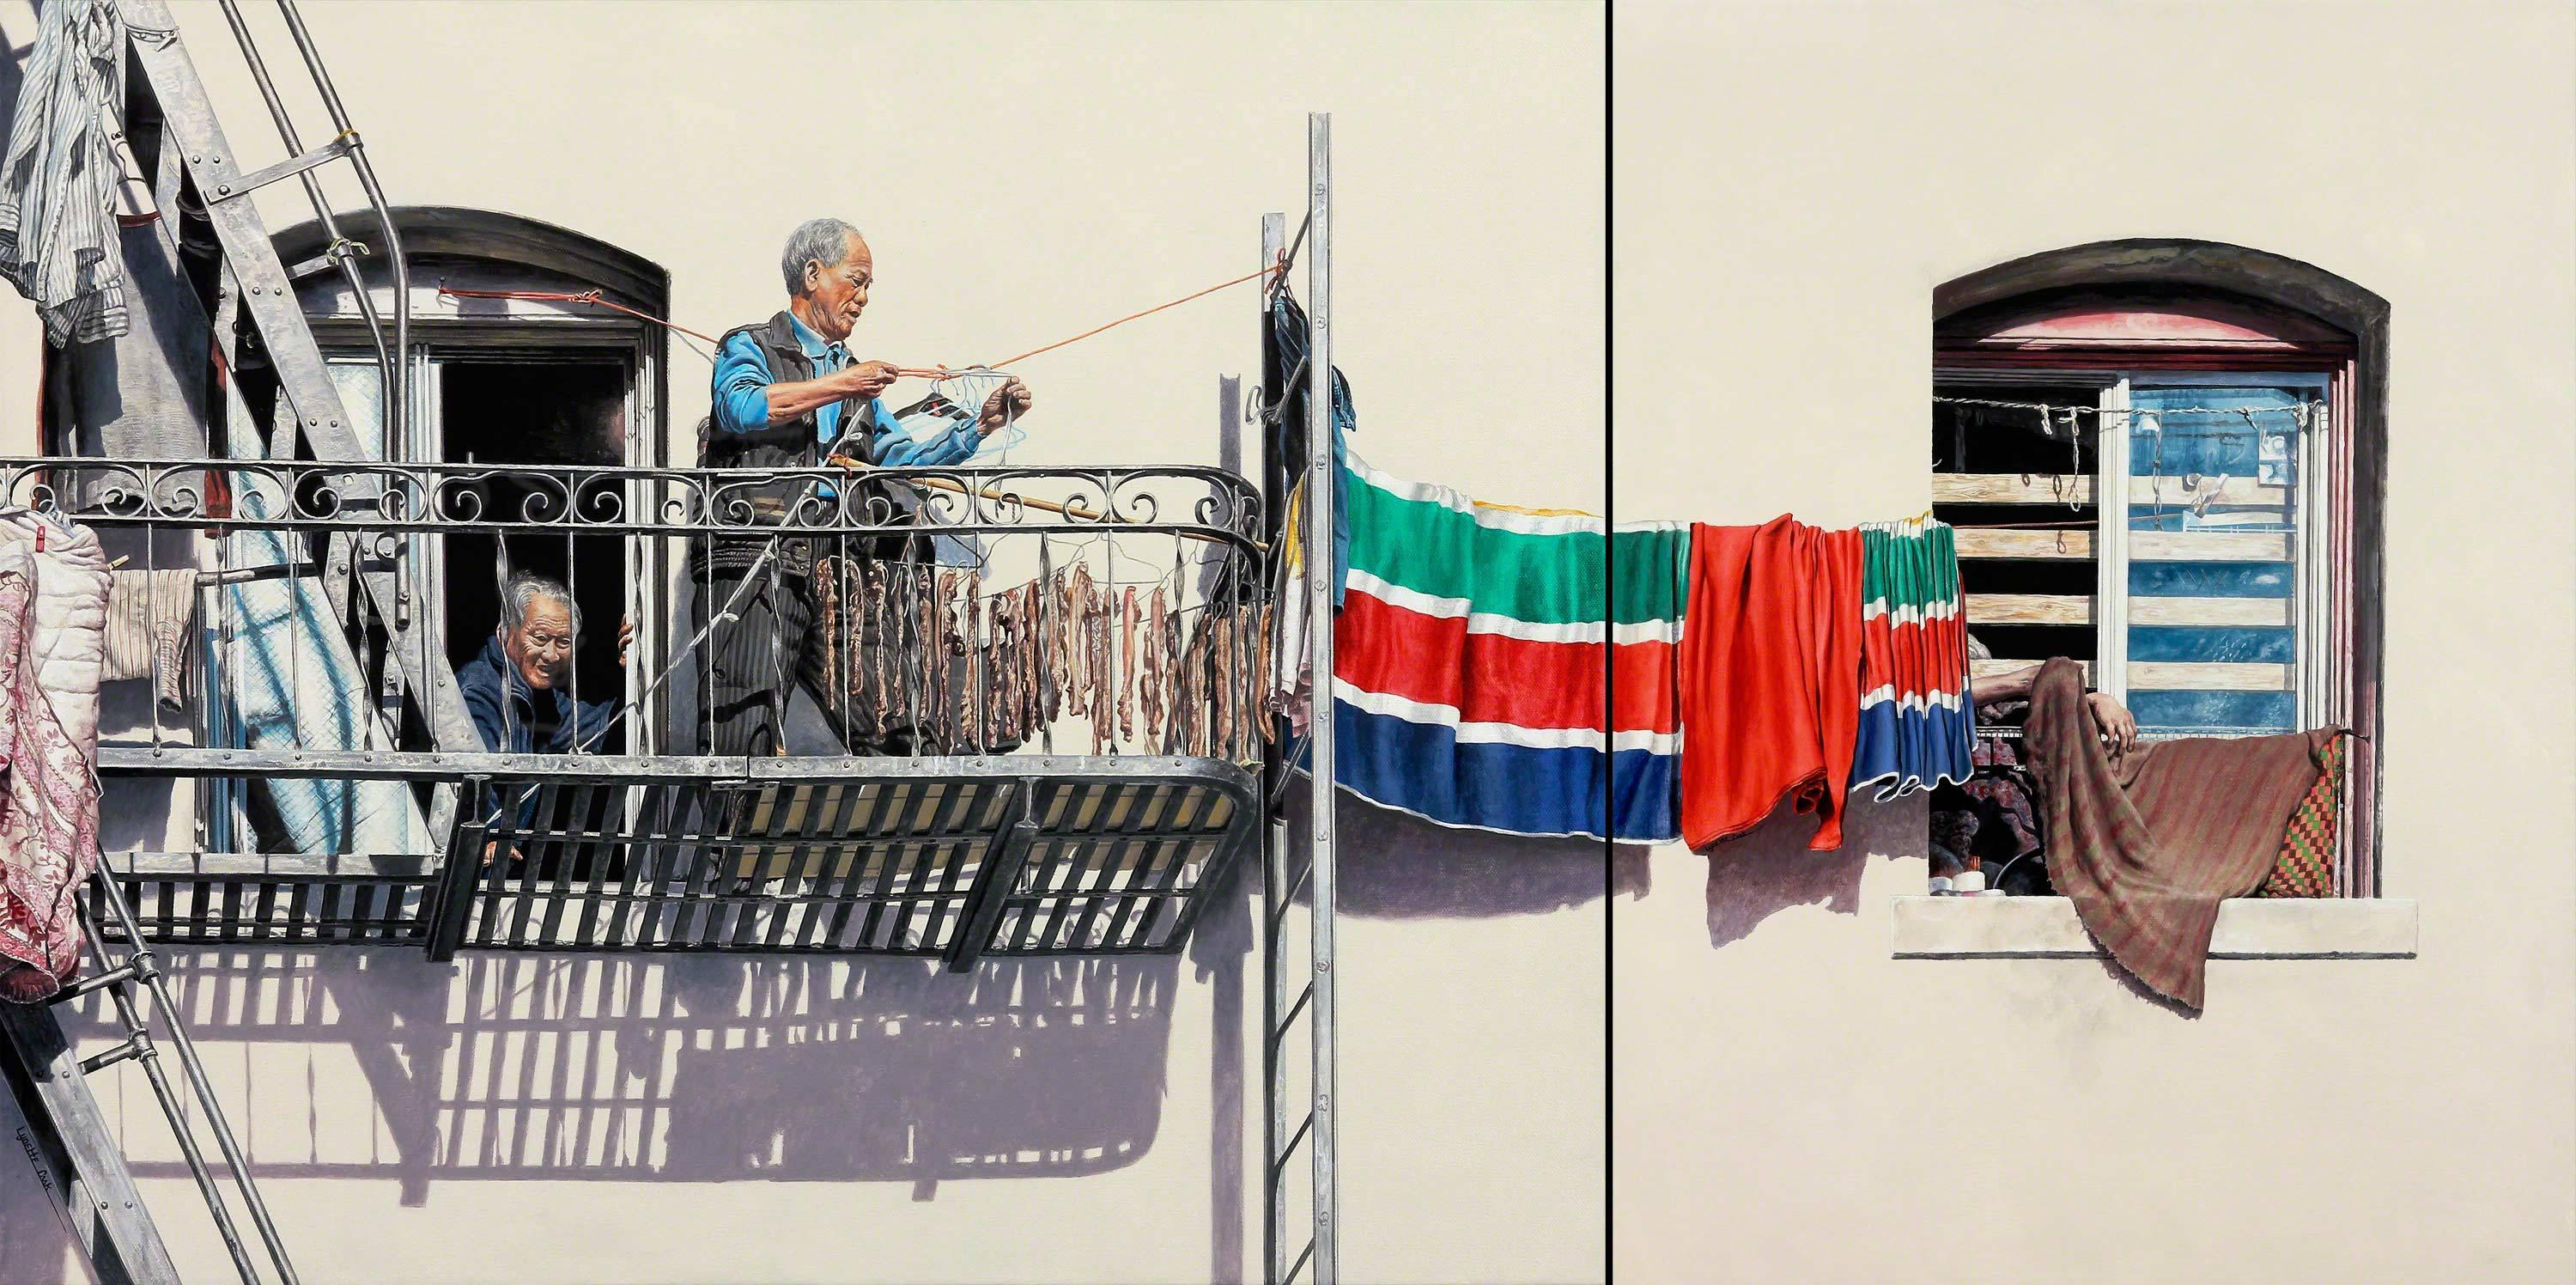 Rigging the Line / figurative realism Chinatown hyperreal painting